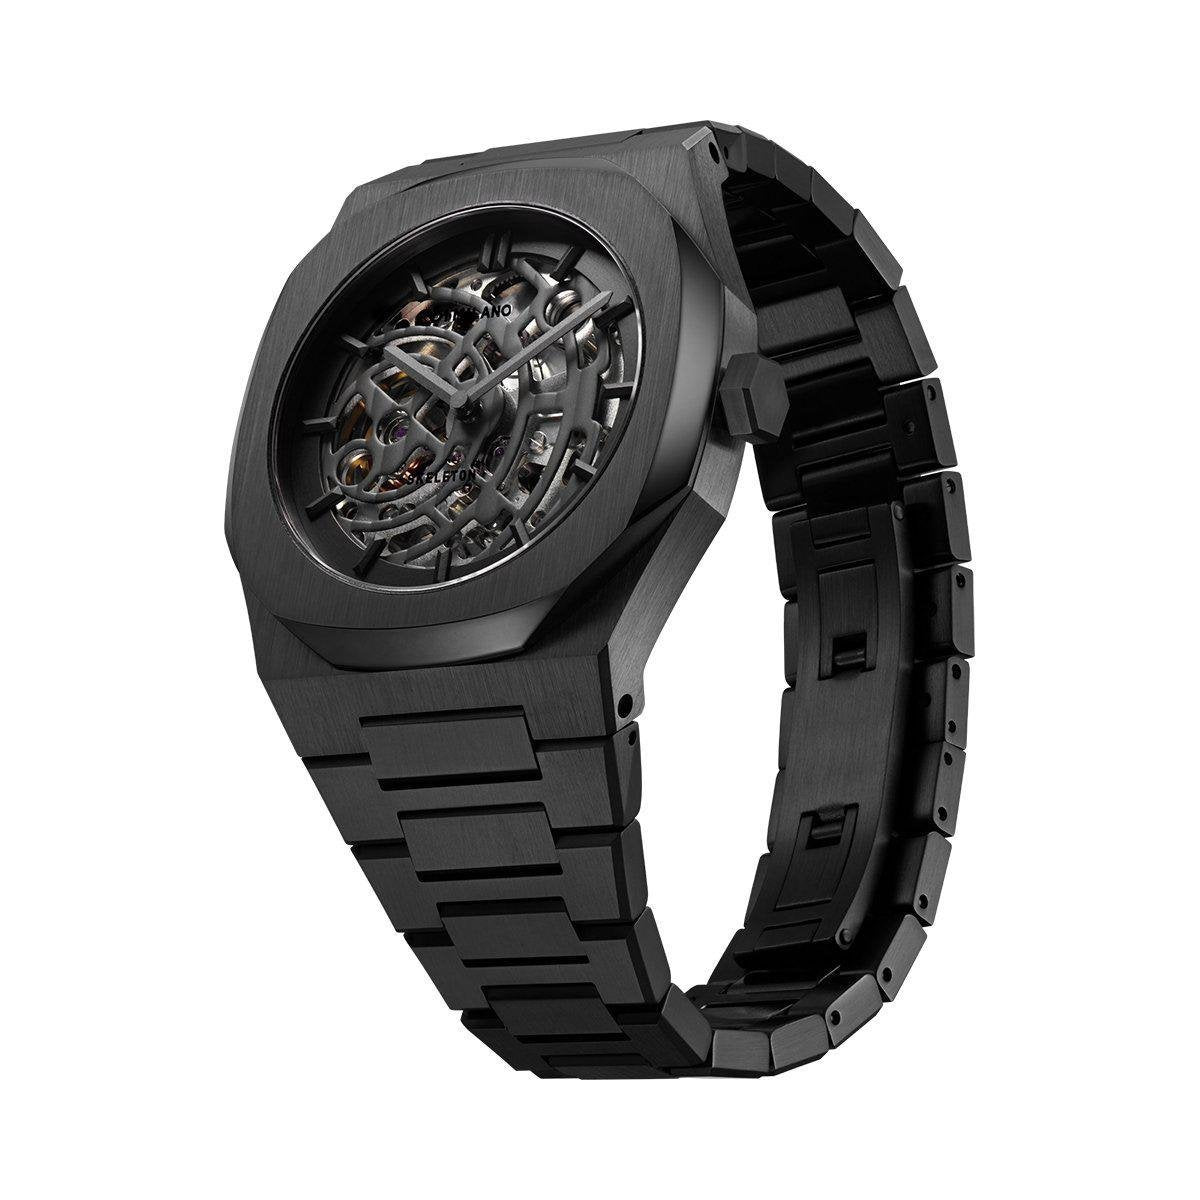 The long-awaited all-black model was released from the skeleton collection of NEWS-D1 MILANO.-principeprive